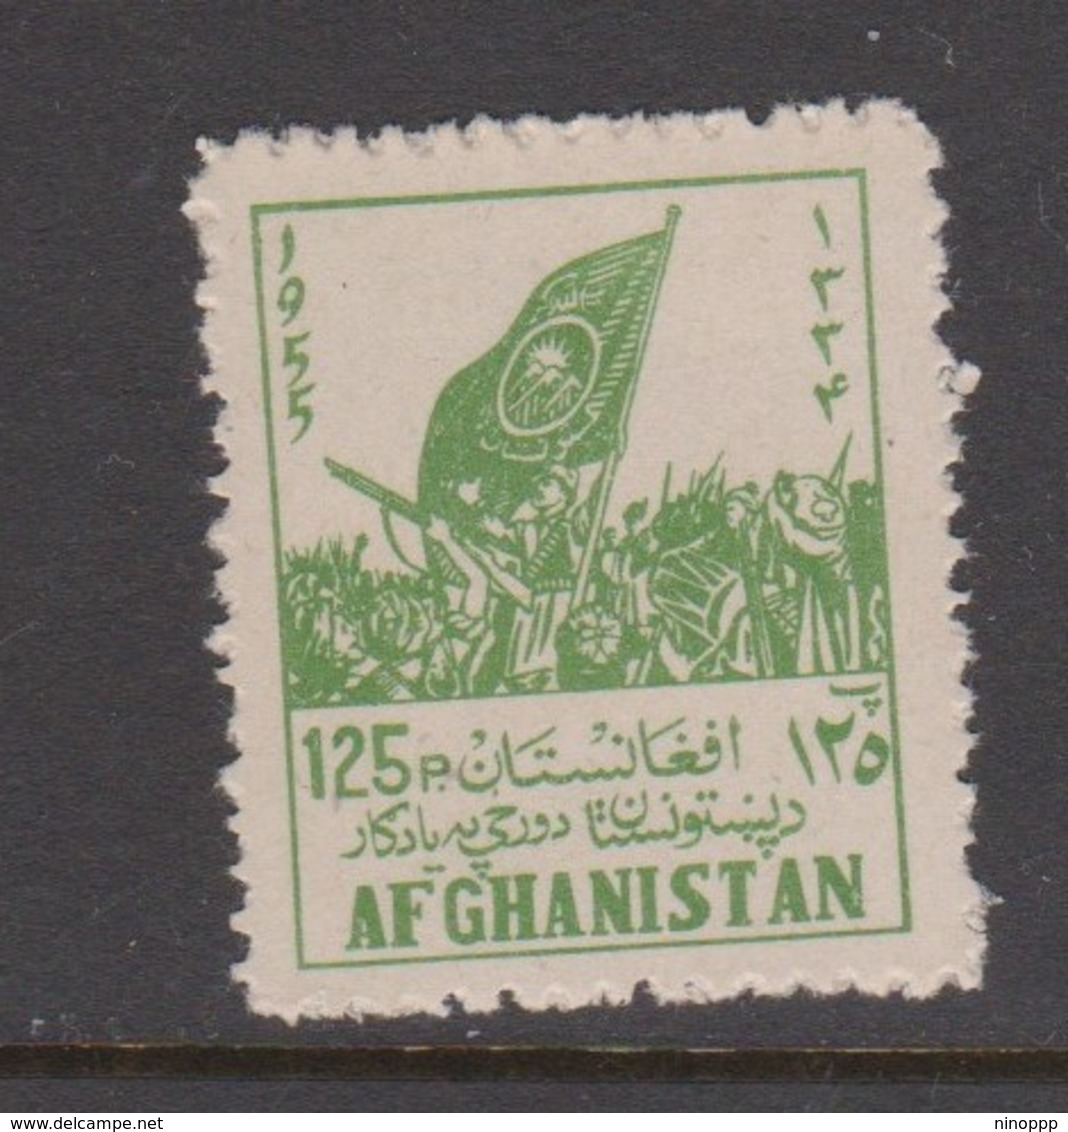 Afghanistan SG 401 Pashtunistan Day 125p Green,MNH - Afghanistan